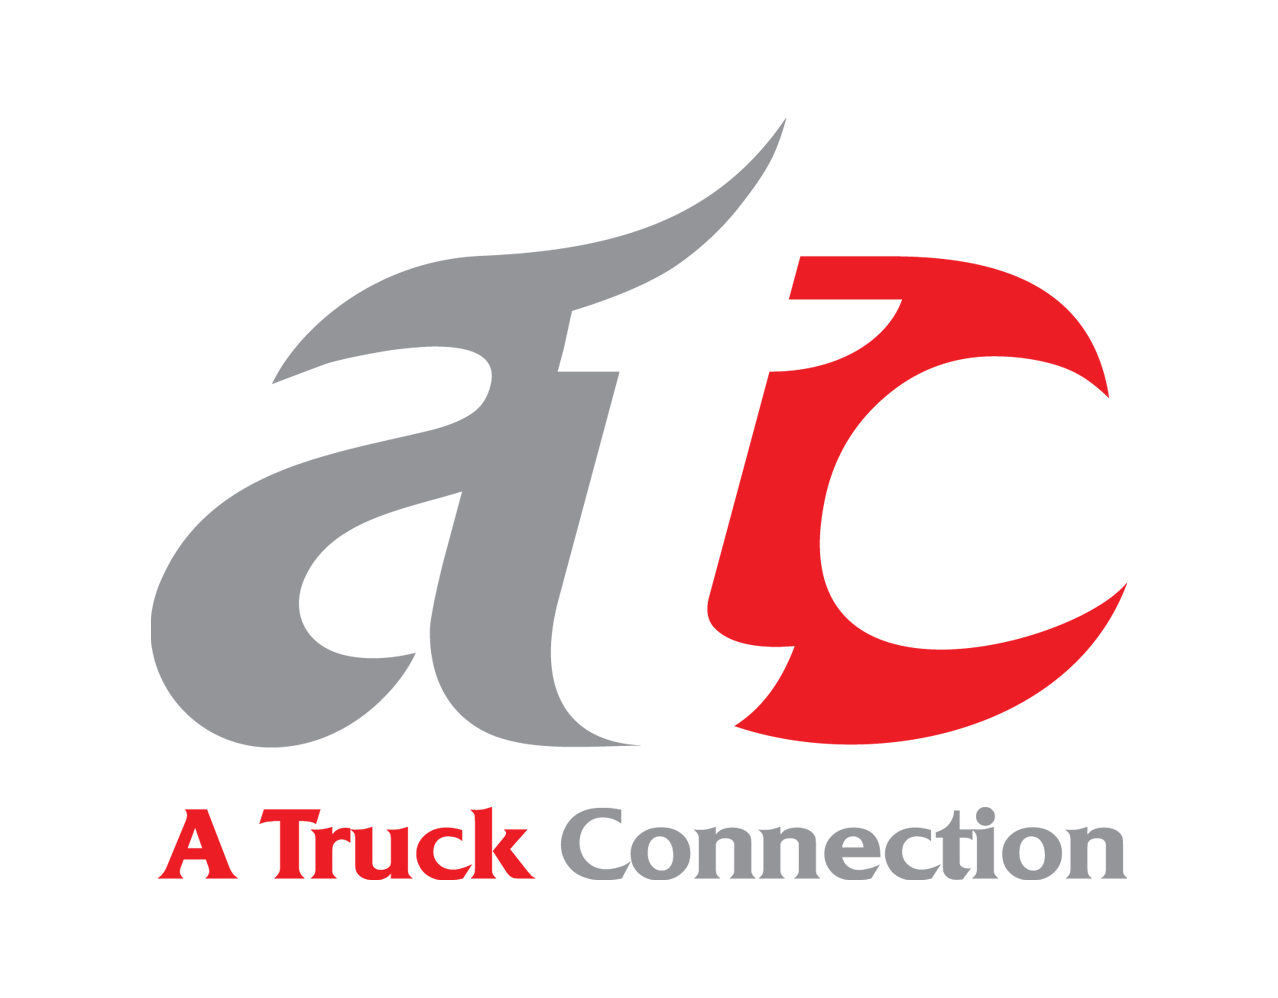 create a logo recognizable to the trucking industry for application to sponsored rodeo teams